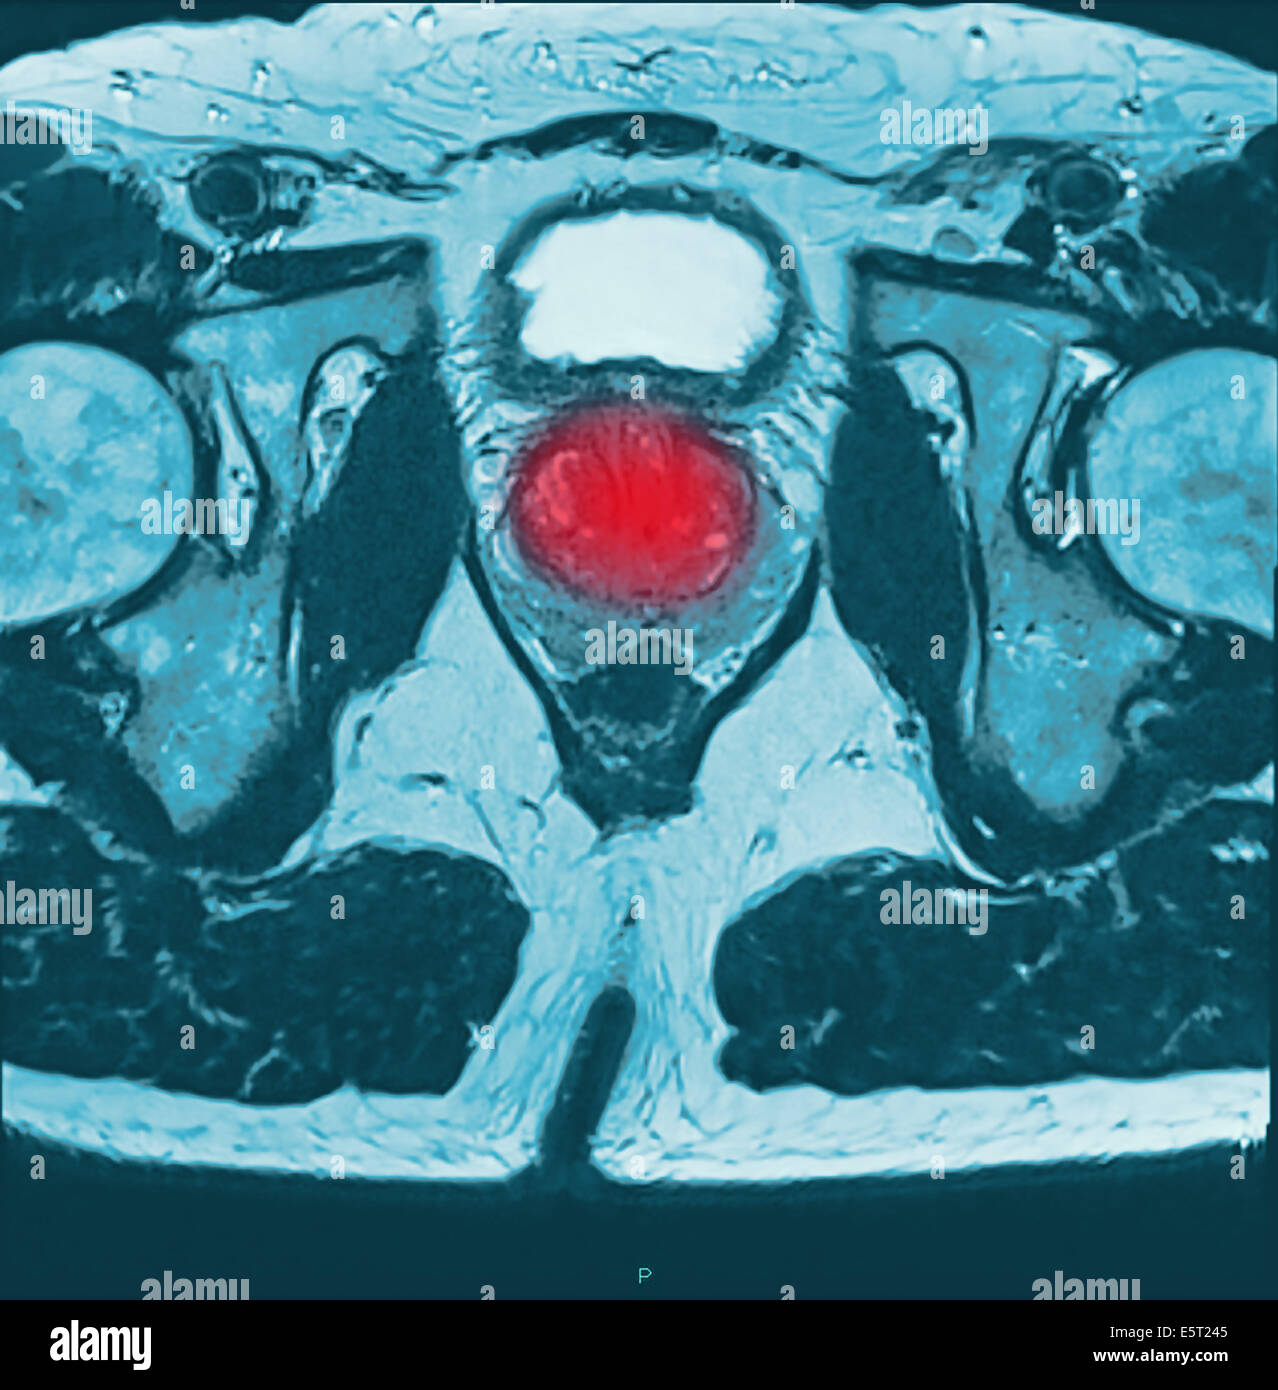 Magnetic resonance imaging (MRI) scan of a section through the pelvis of a with prostate cancer (red, at centre). - Stock Image